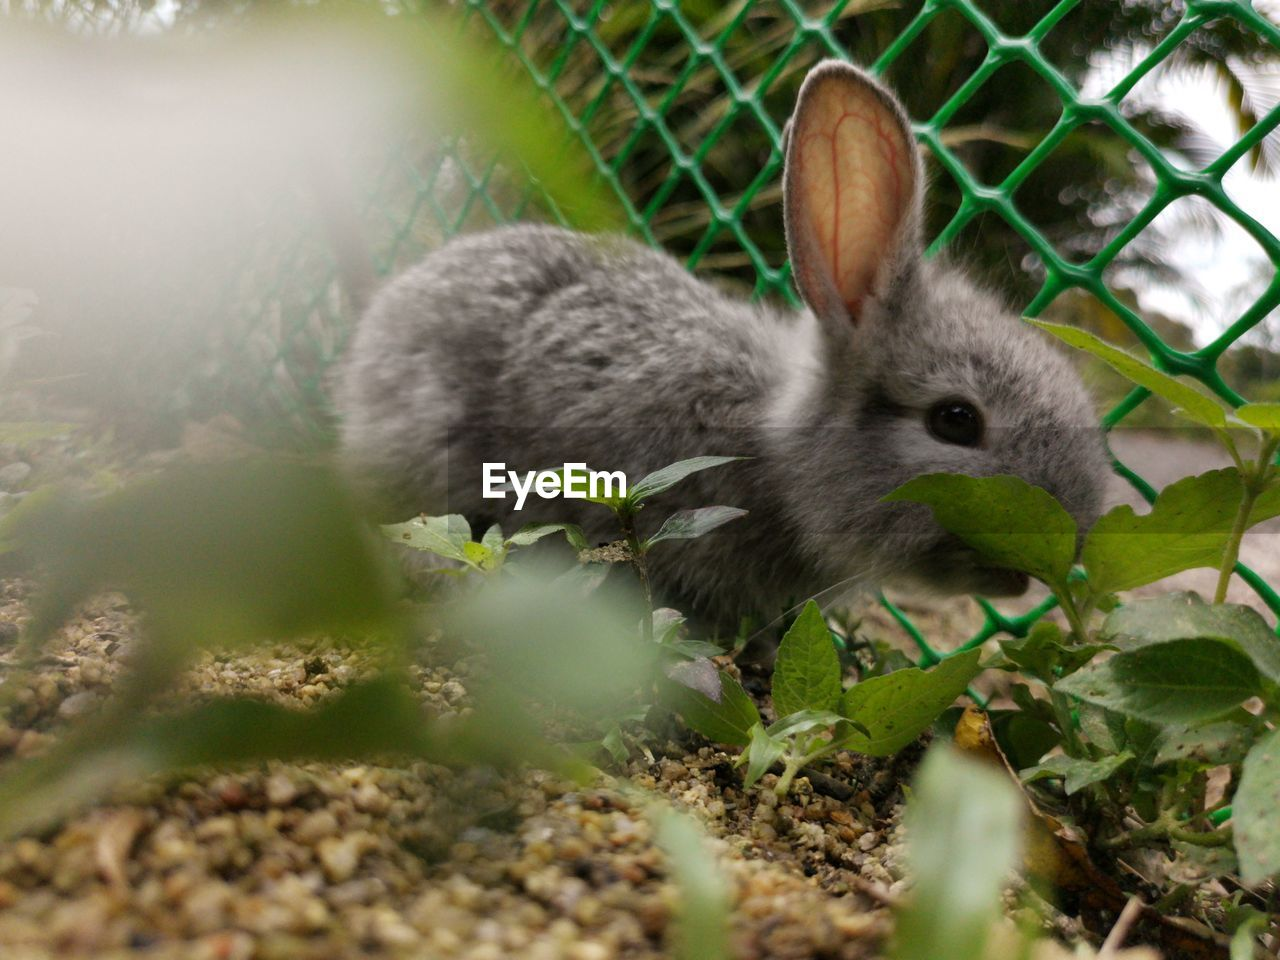 animal themes, animal, one animal, vertebrate, animal wildlife, mammal, nature, animals in the wild, no people, plant, leaf, plant part, selective focus, day, land, rabbit, close-up, rabbit - animal, field, young animal, outdoors, herbivorous, whisker